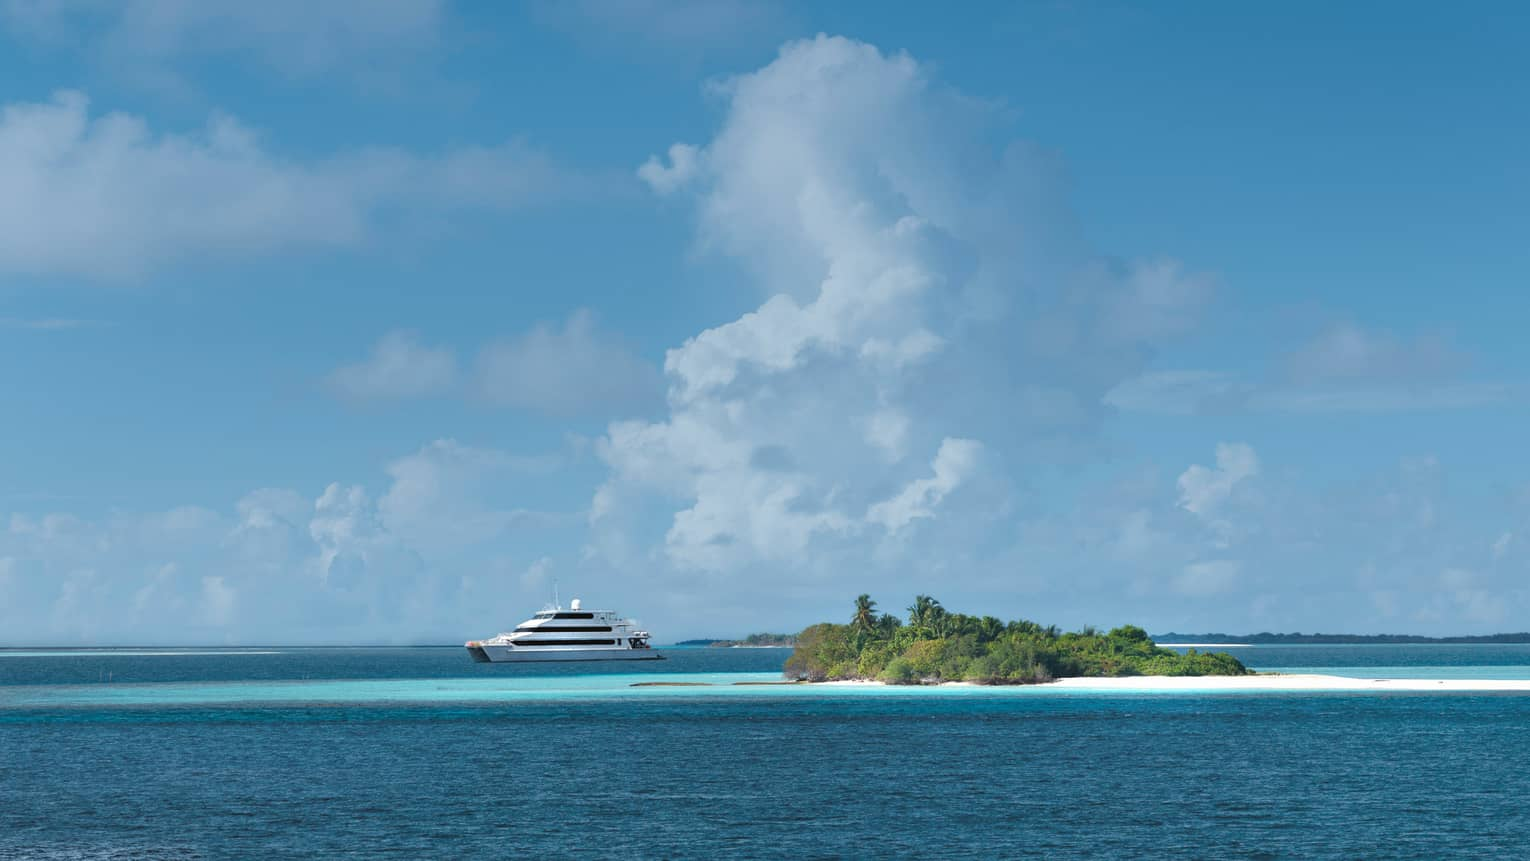 Large white catamaran yacht by small island in ocean